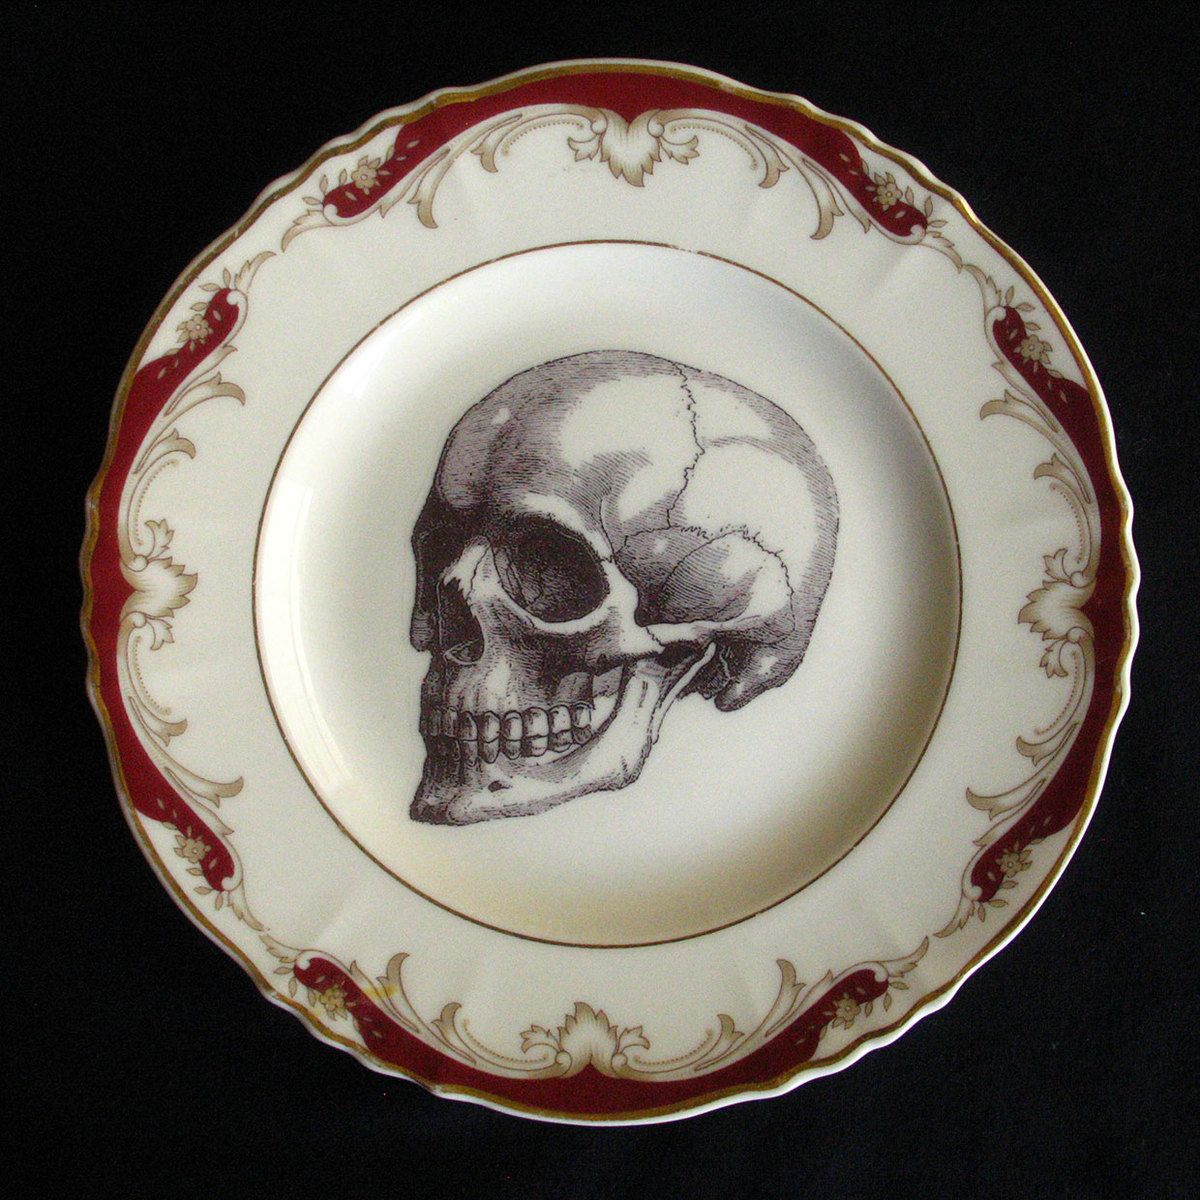 Skull Plate IV, is exactly what I have been looking for!